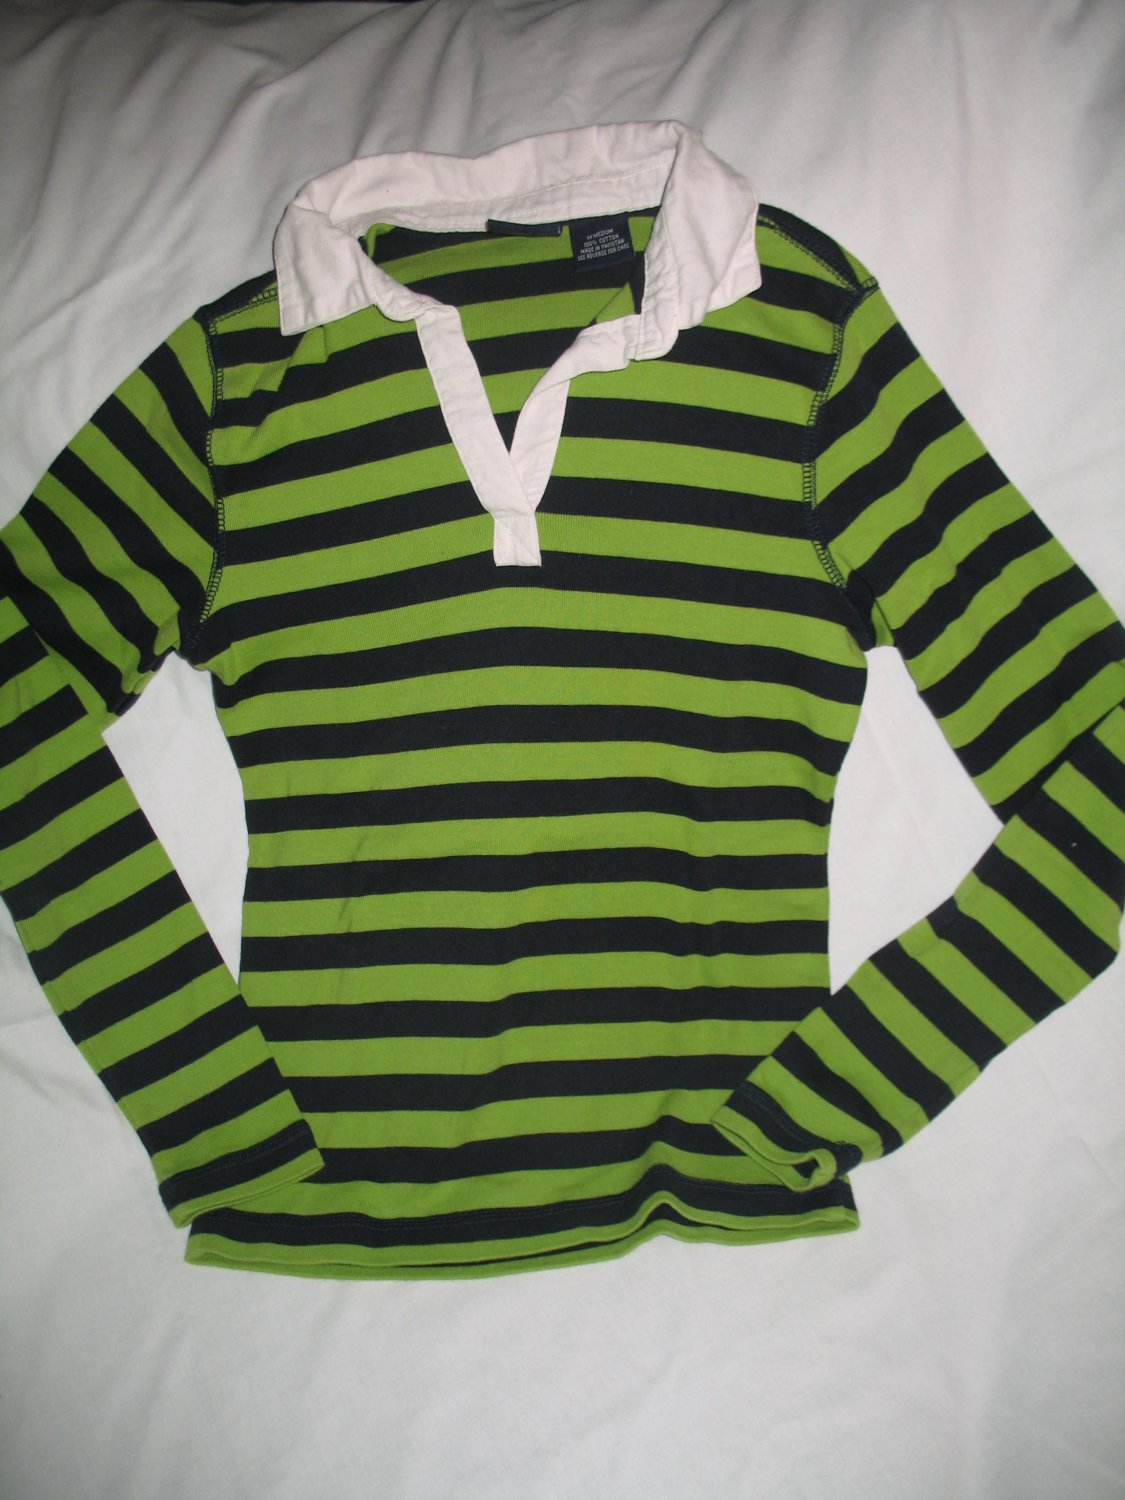 Size M Ladies Women 39 S Rugby Polo Green And Navy Striped